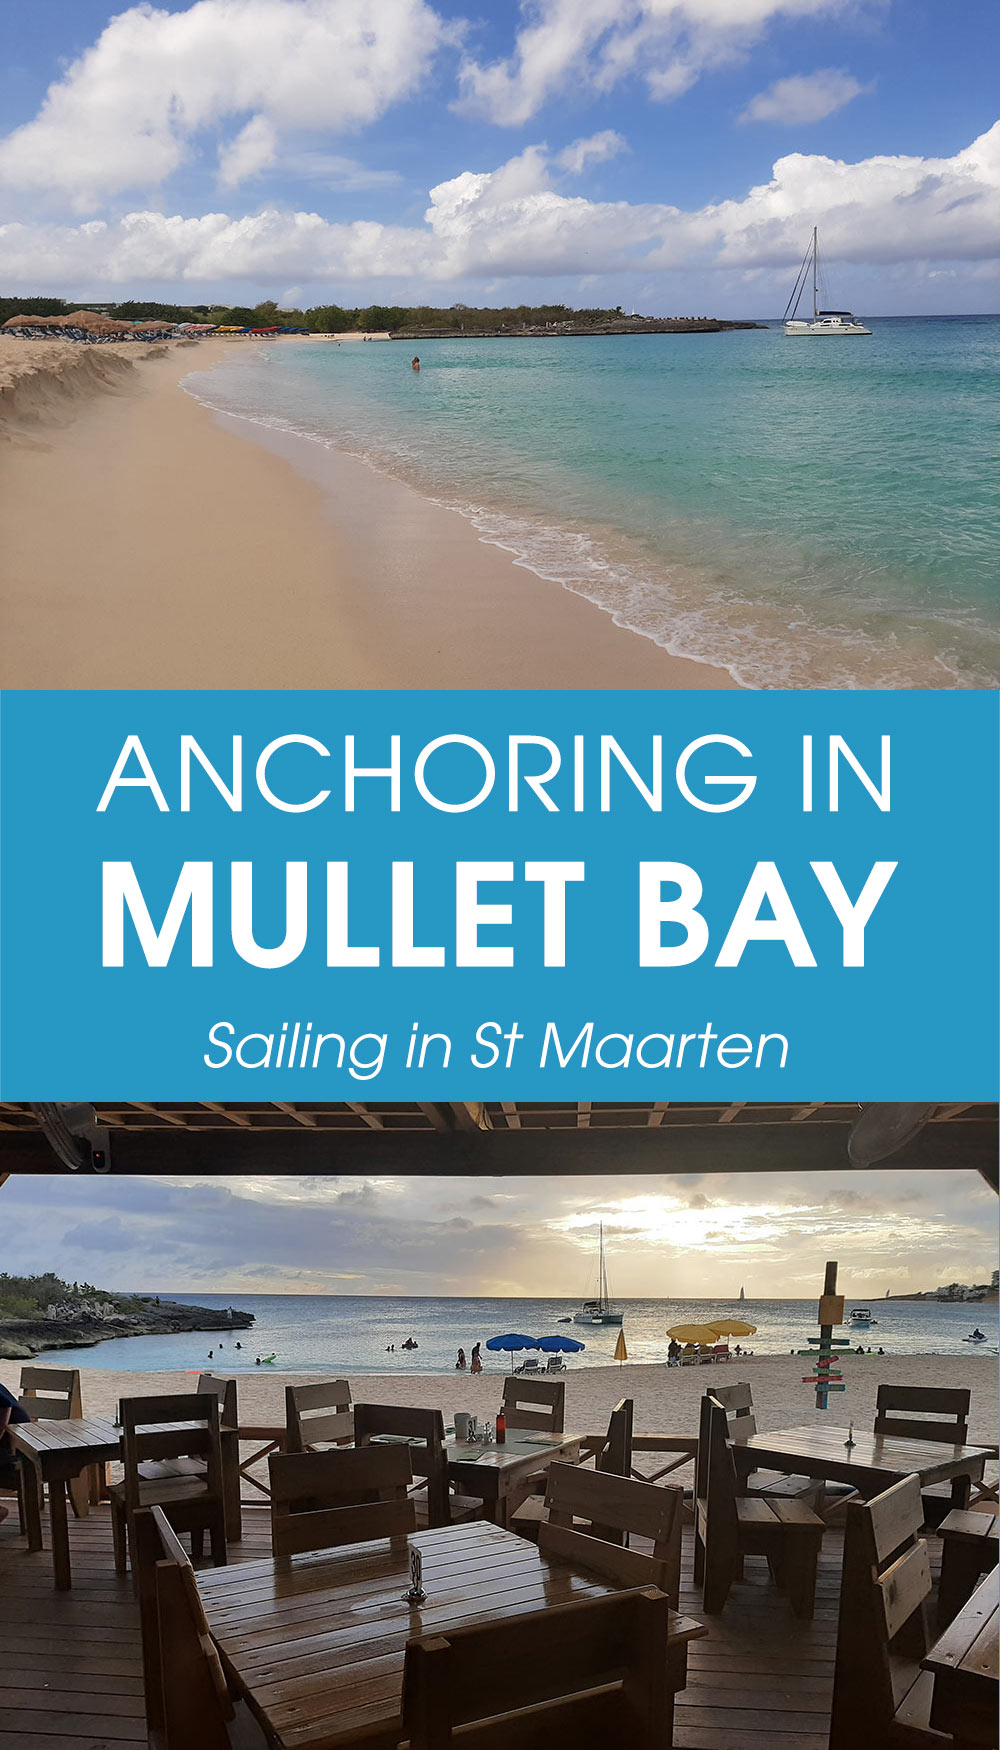 Anchoring in Mullet Bay while sailing in St Maarten